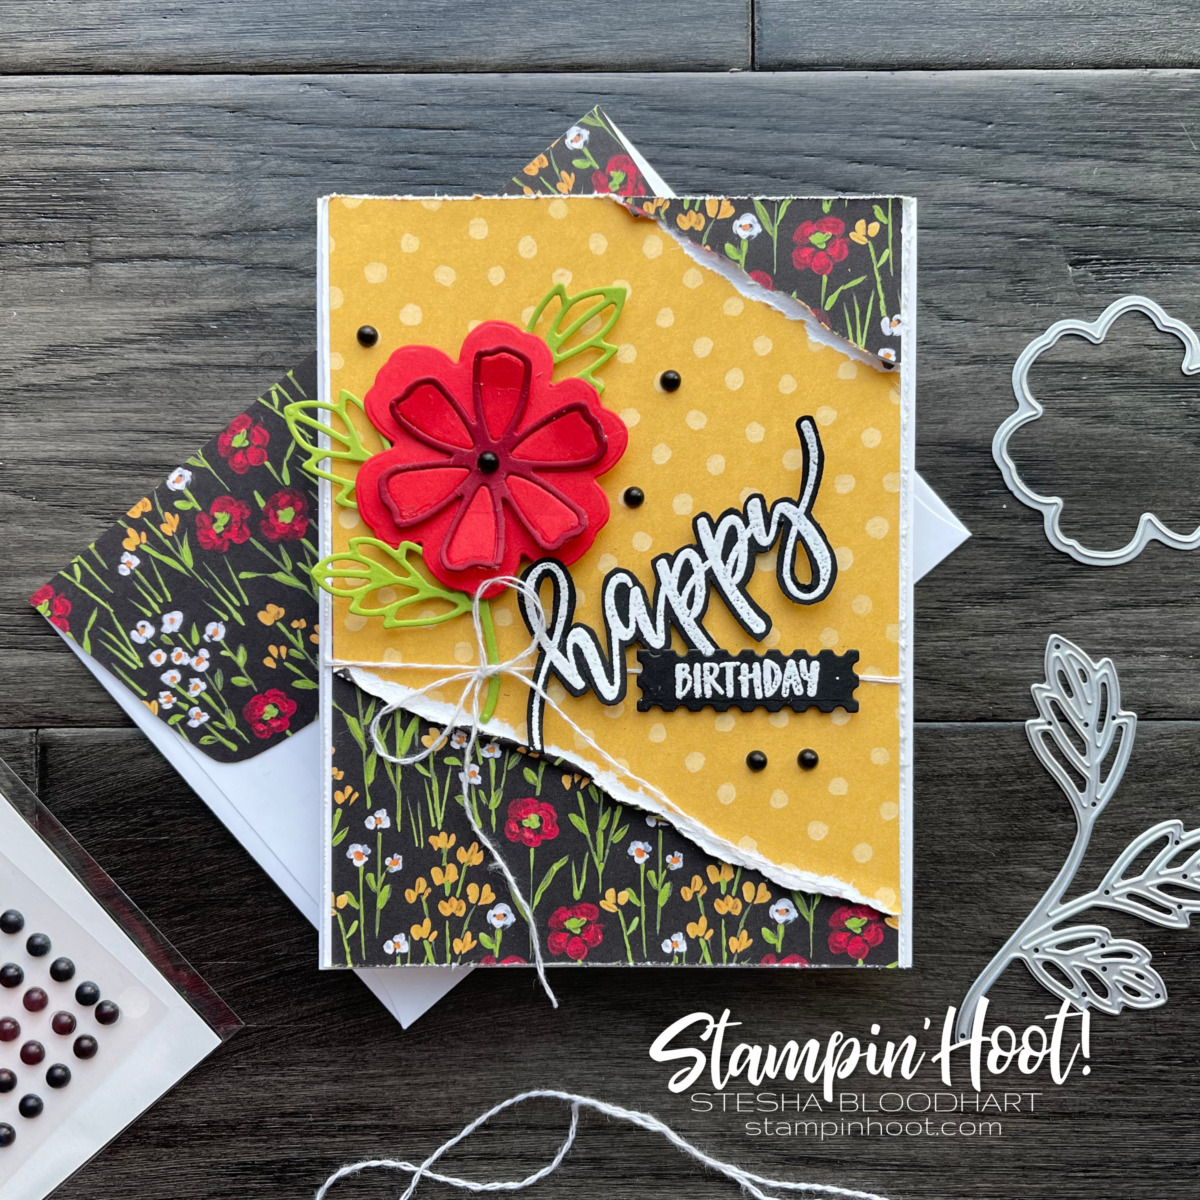 Stampin' Up! Pretty Perennials Bundle and Flower & Field Designer Series Paper. Happy Birthday Card by Stesha Bloodhart, Stampin' Hoot!